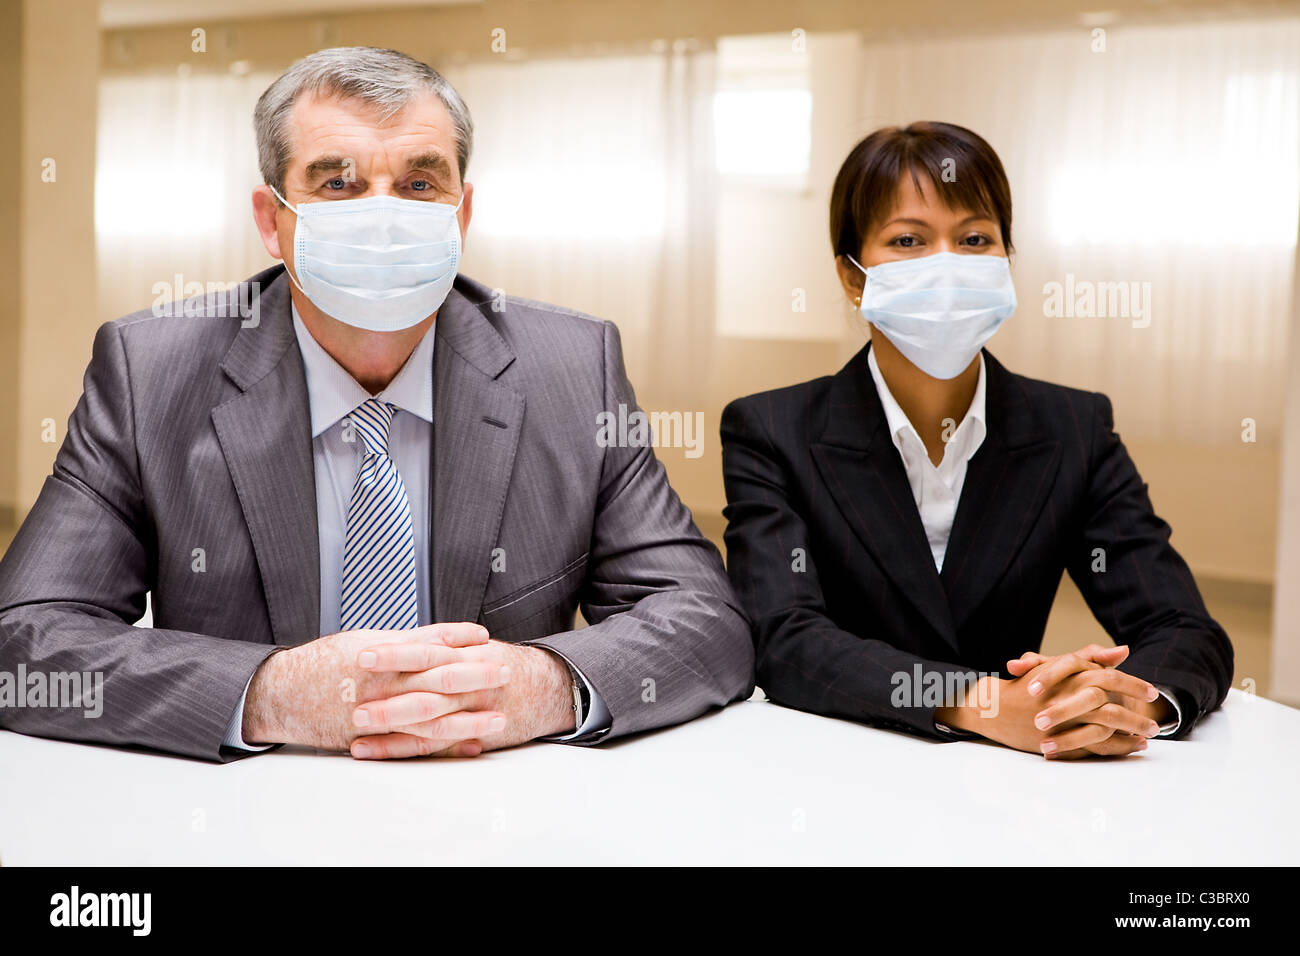 Portrait of two business partners in protective masks looking at camera - Stock Image